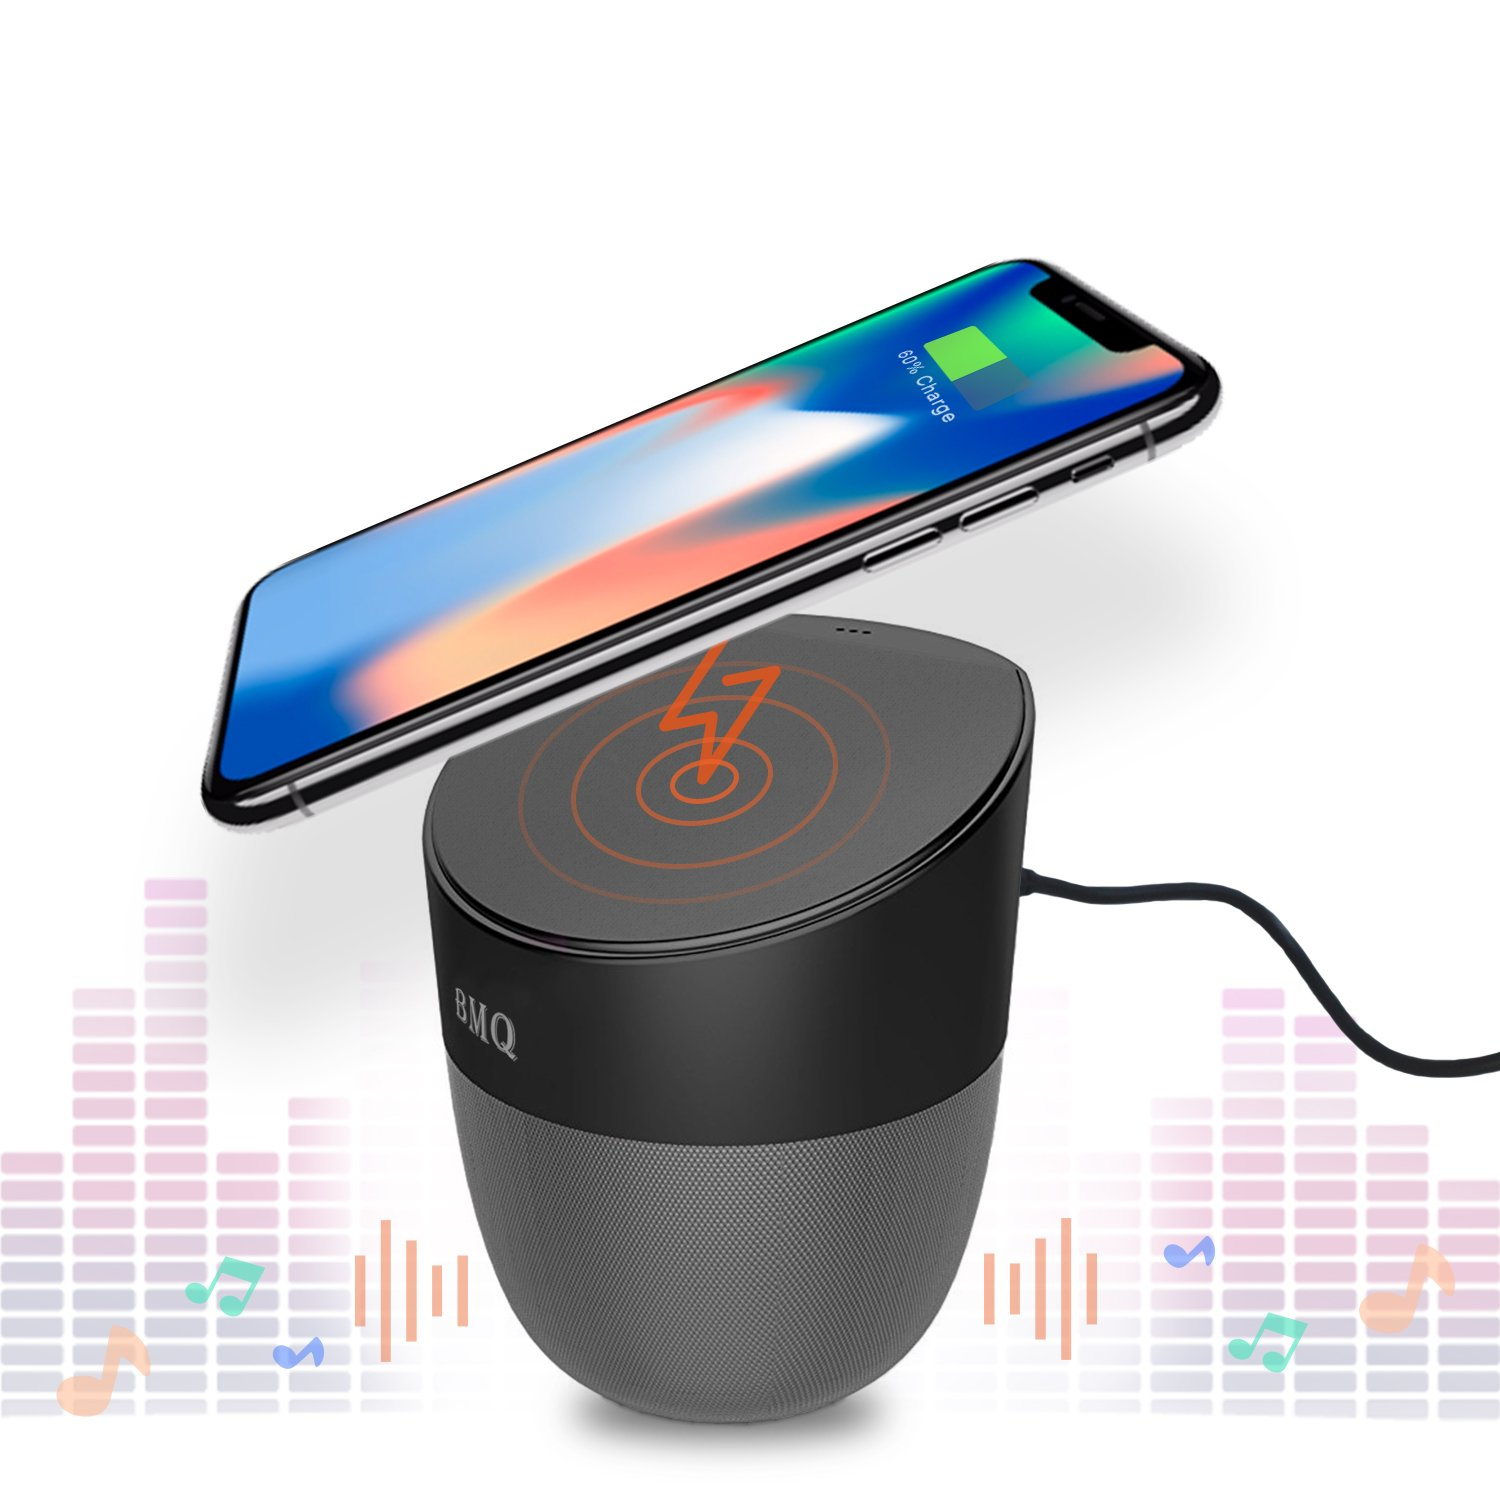 Bluetooth 4.0 Speaker & Wireless Charger Hands-Free Power Bank | Enables Qi Charging | 2 x 5W Speakers | Works with iPhone 8/8+/X, Samsung Galaxy S7, S8, Android, all other Qi enabled devices